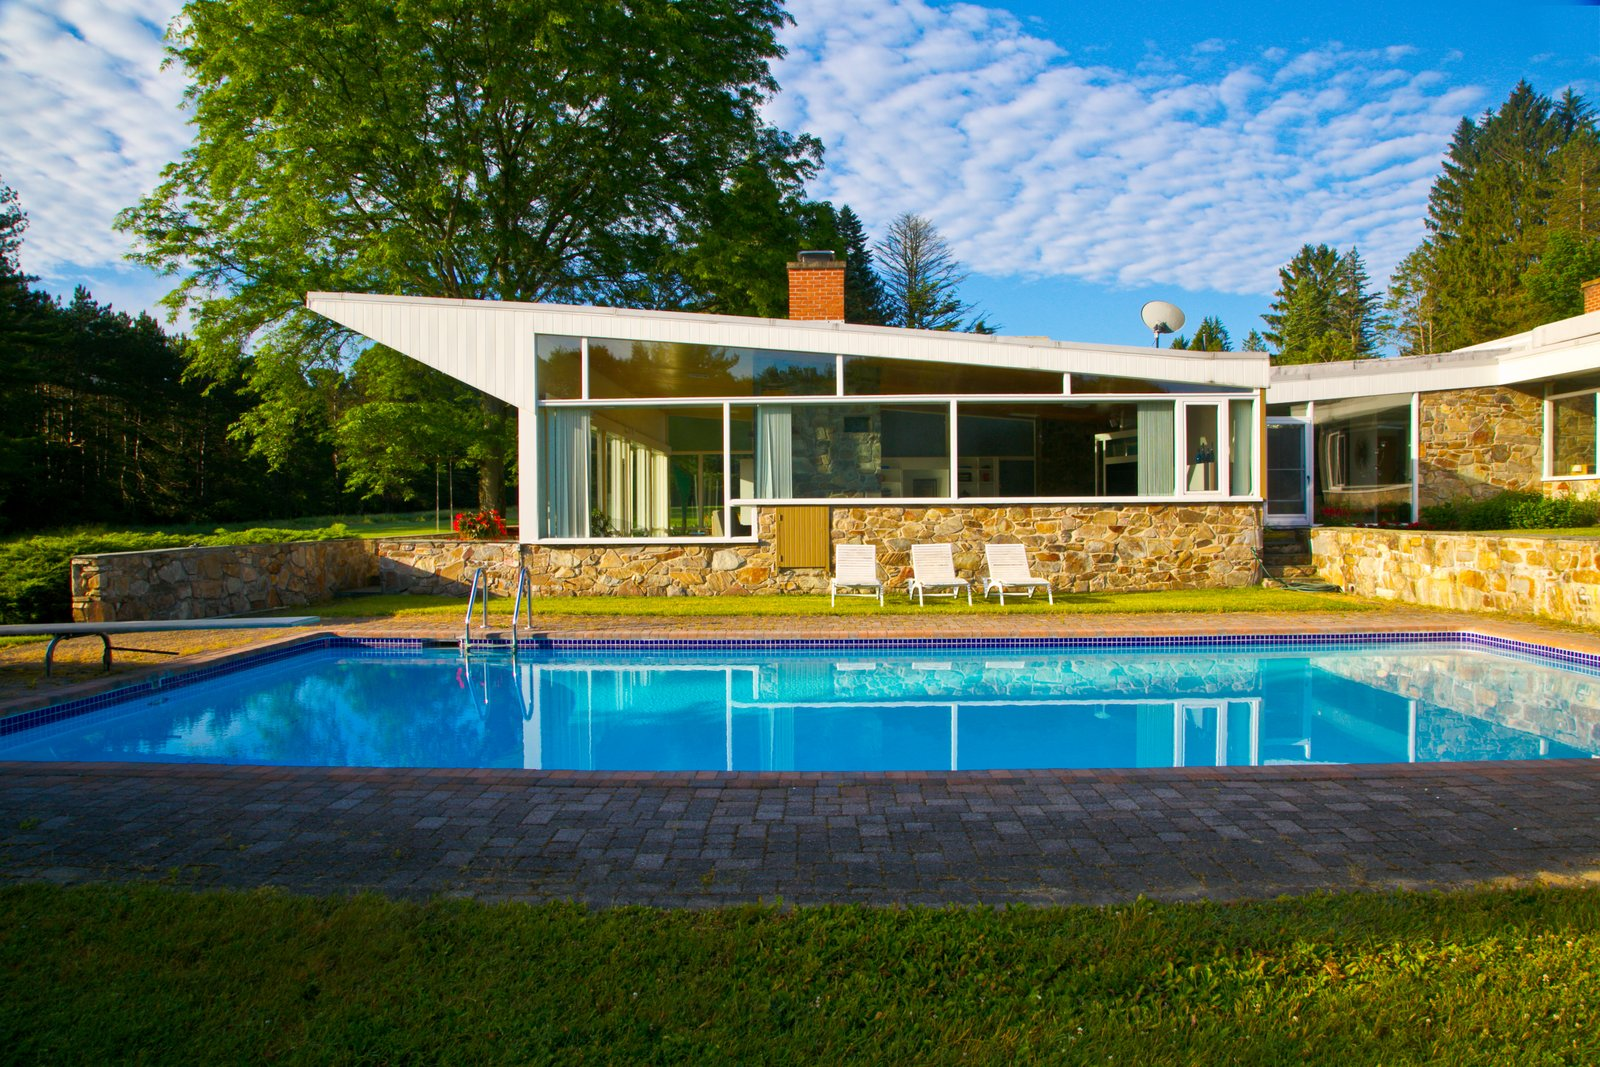 A Marcel Breuer-Designed Midcentury Is Listed For $1.9M